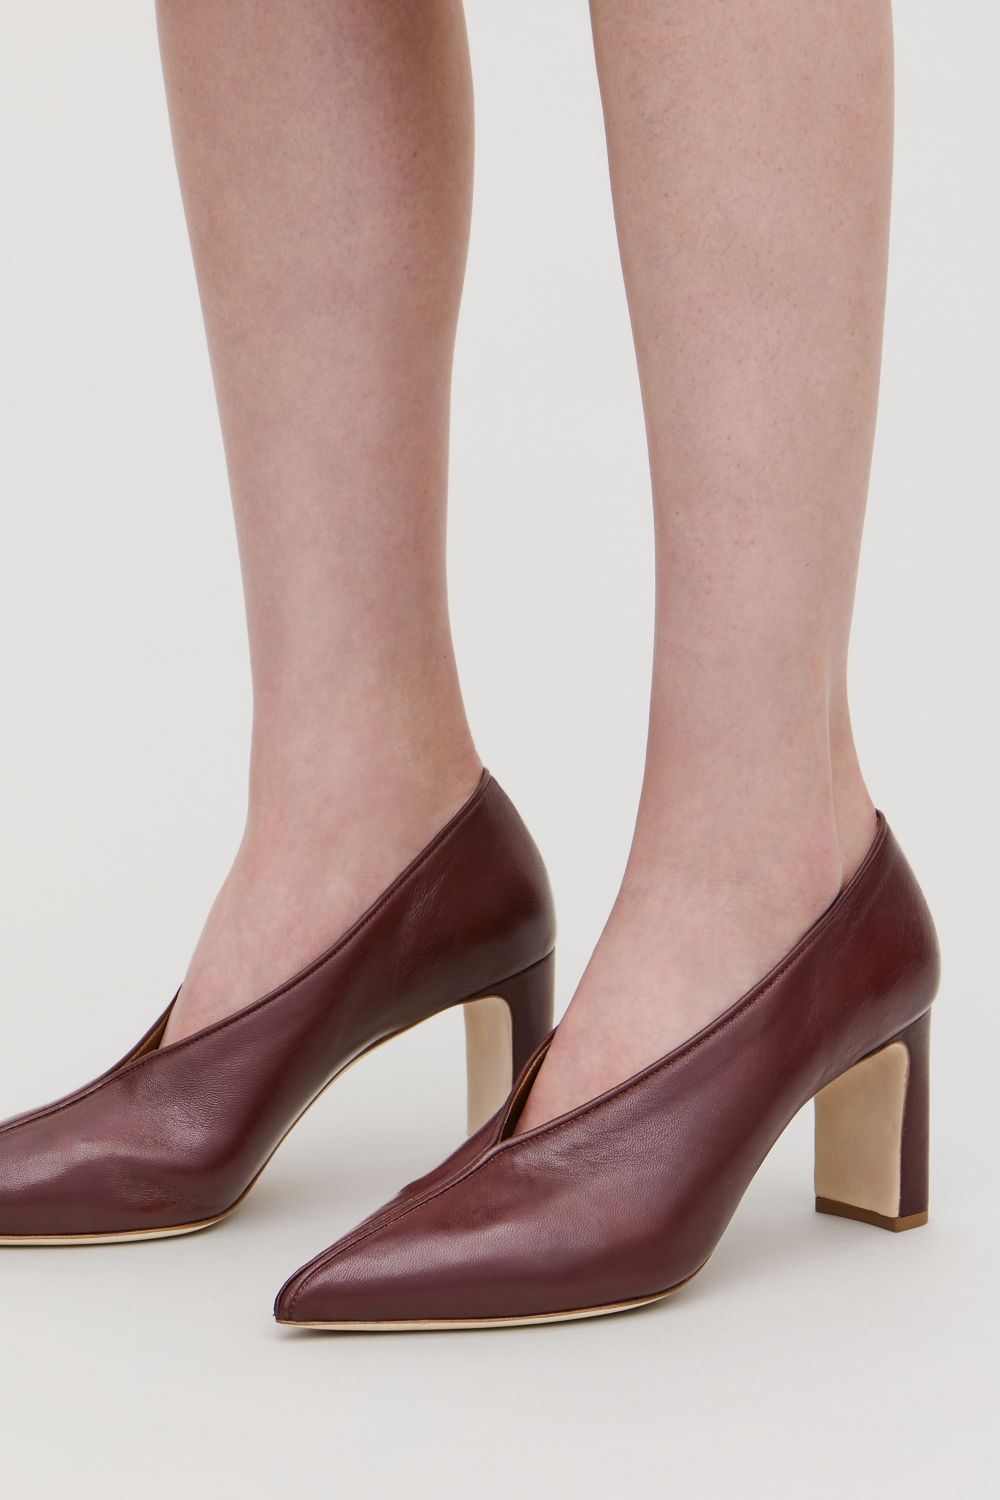 PIPING-TRIMMED LEATHER HEELS